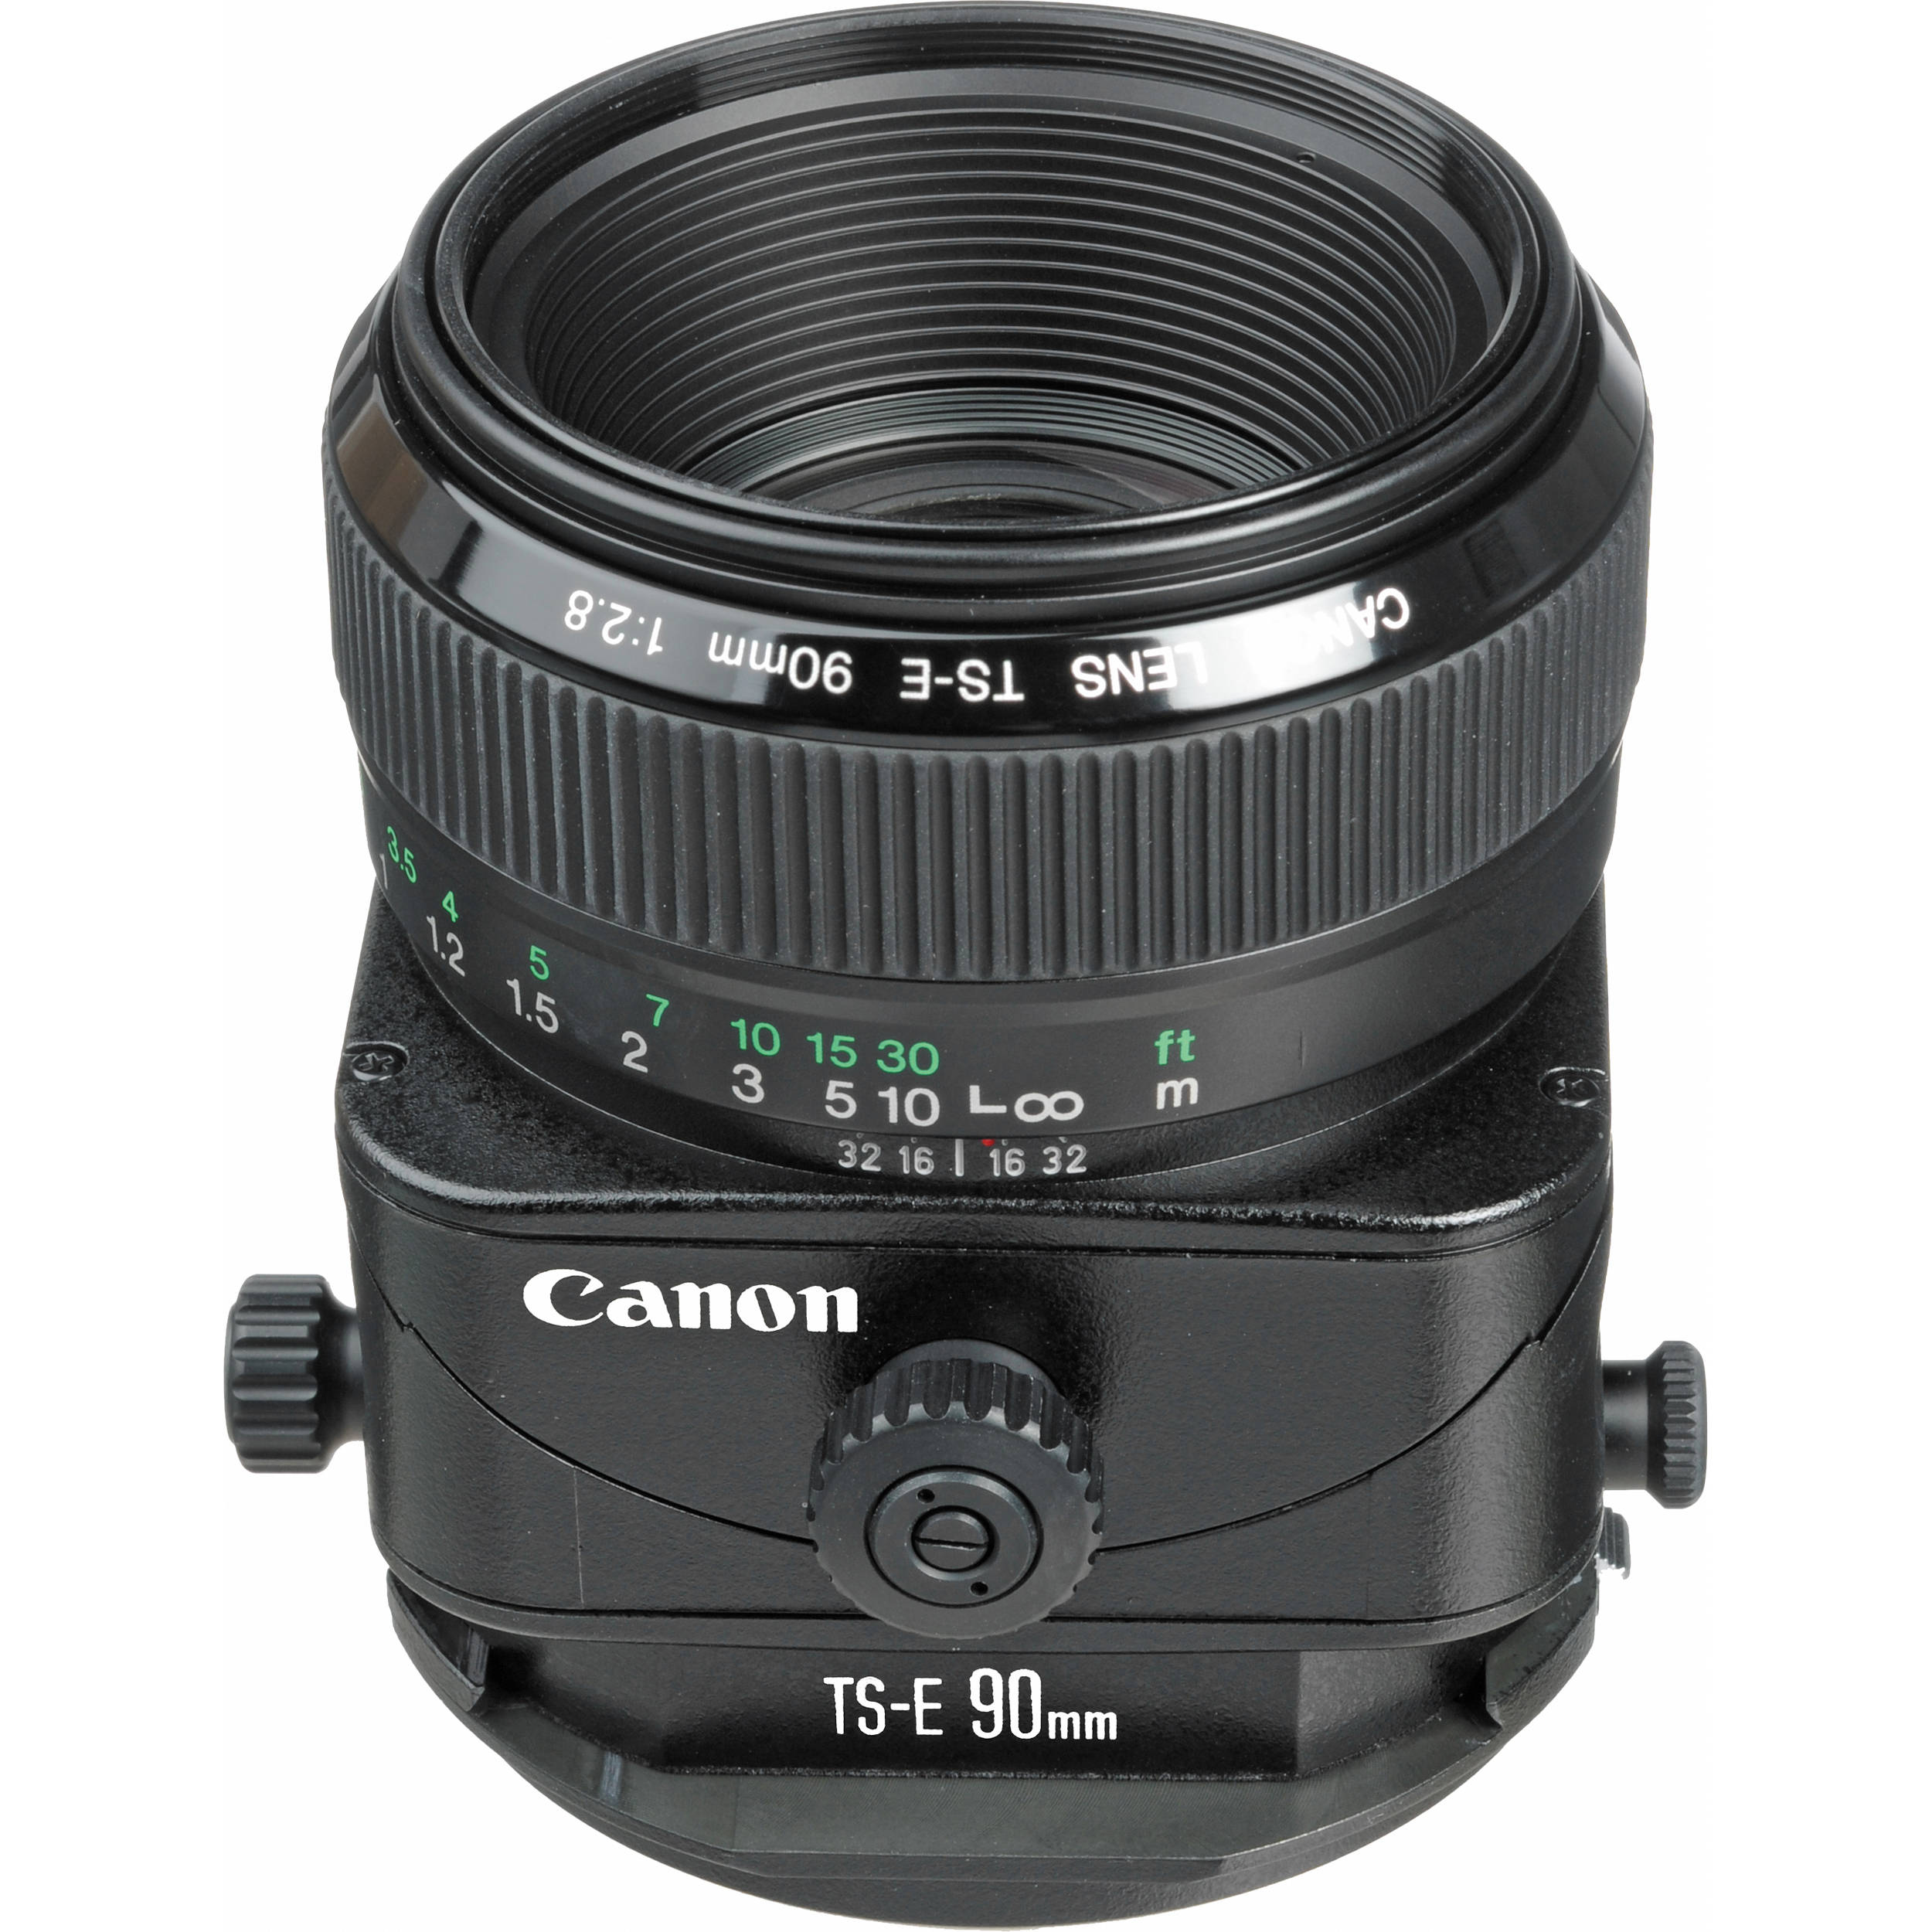 Canon TS-E 90mm f/2.8 Tilt-Shift Lens 2544A003 B&H Photo Video